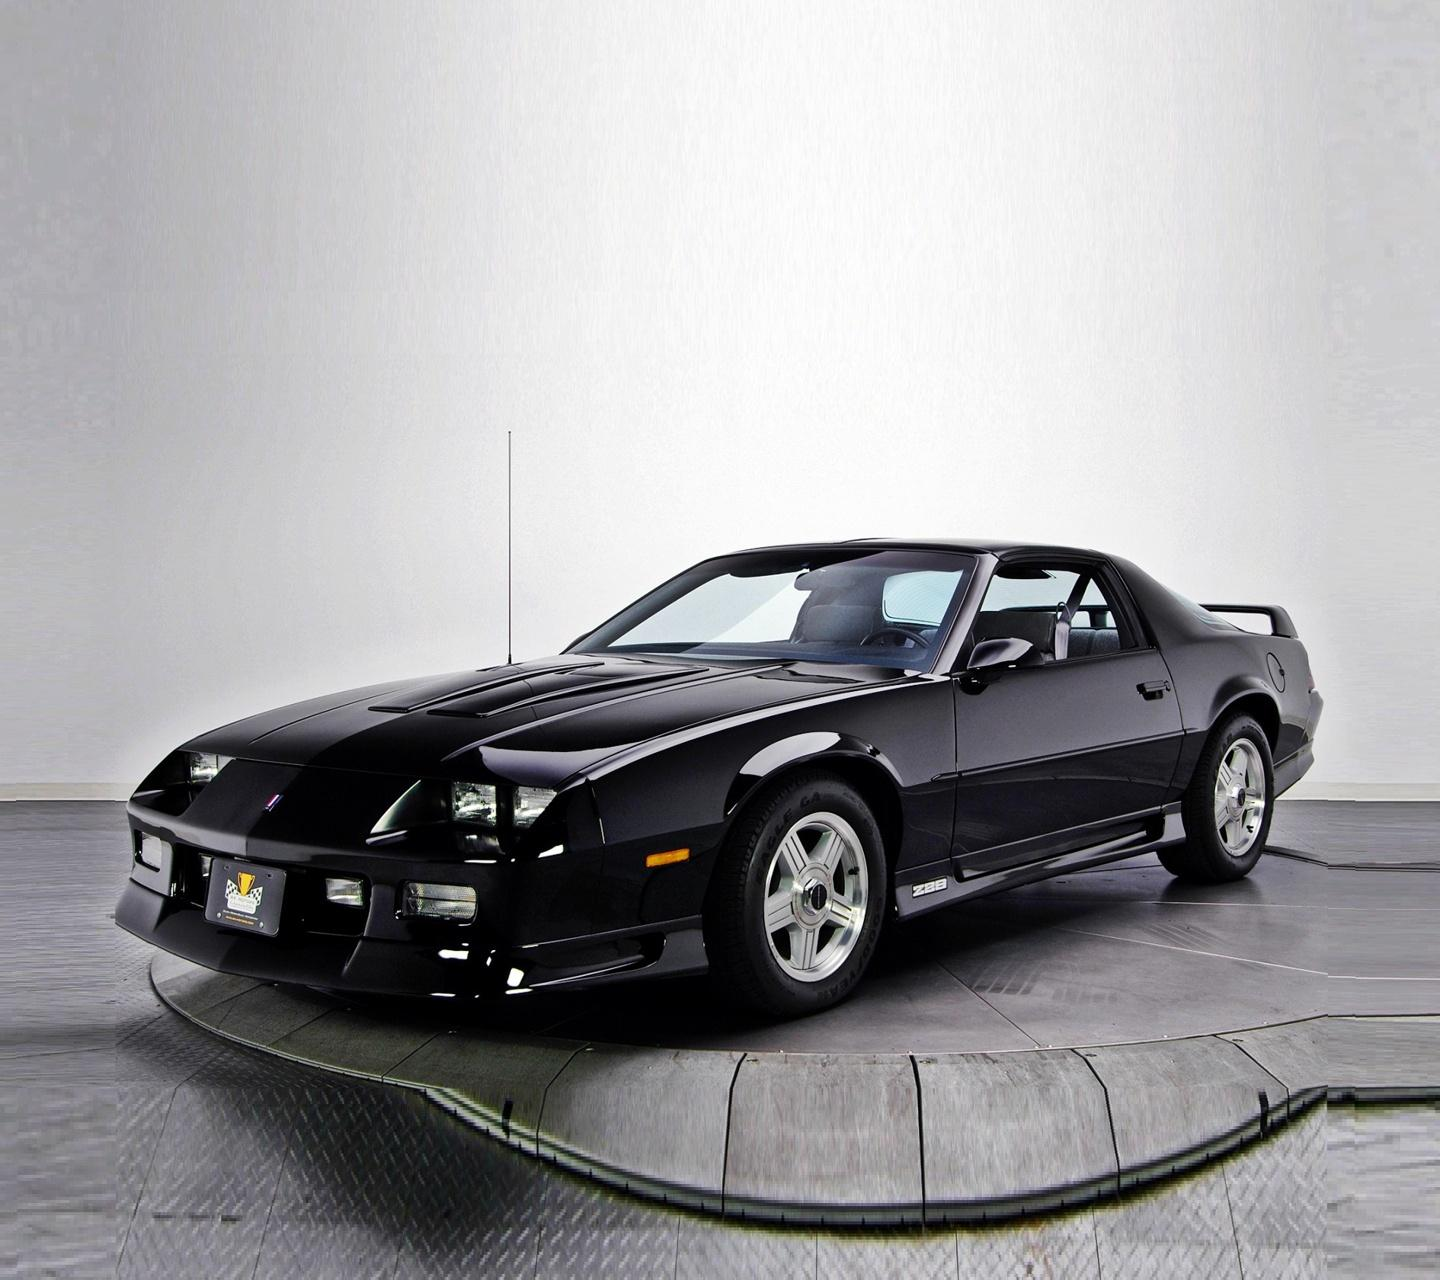 Download 1992 Camaro Z28 Hd Wallpaper